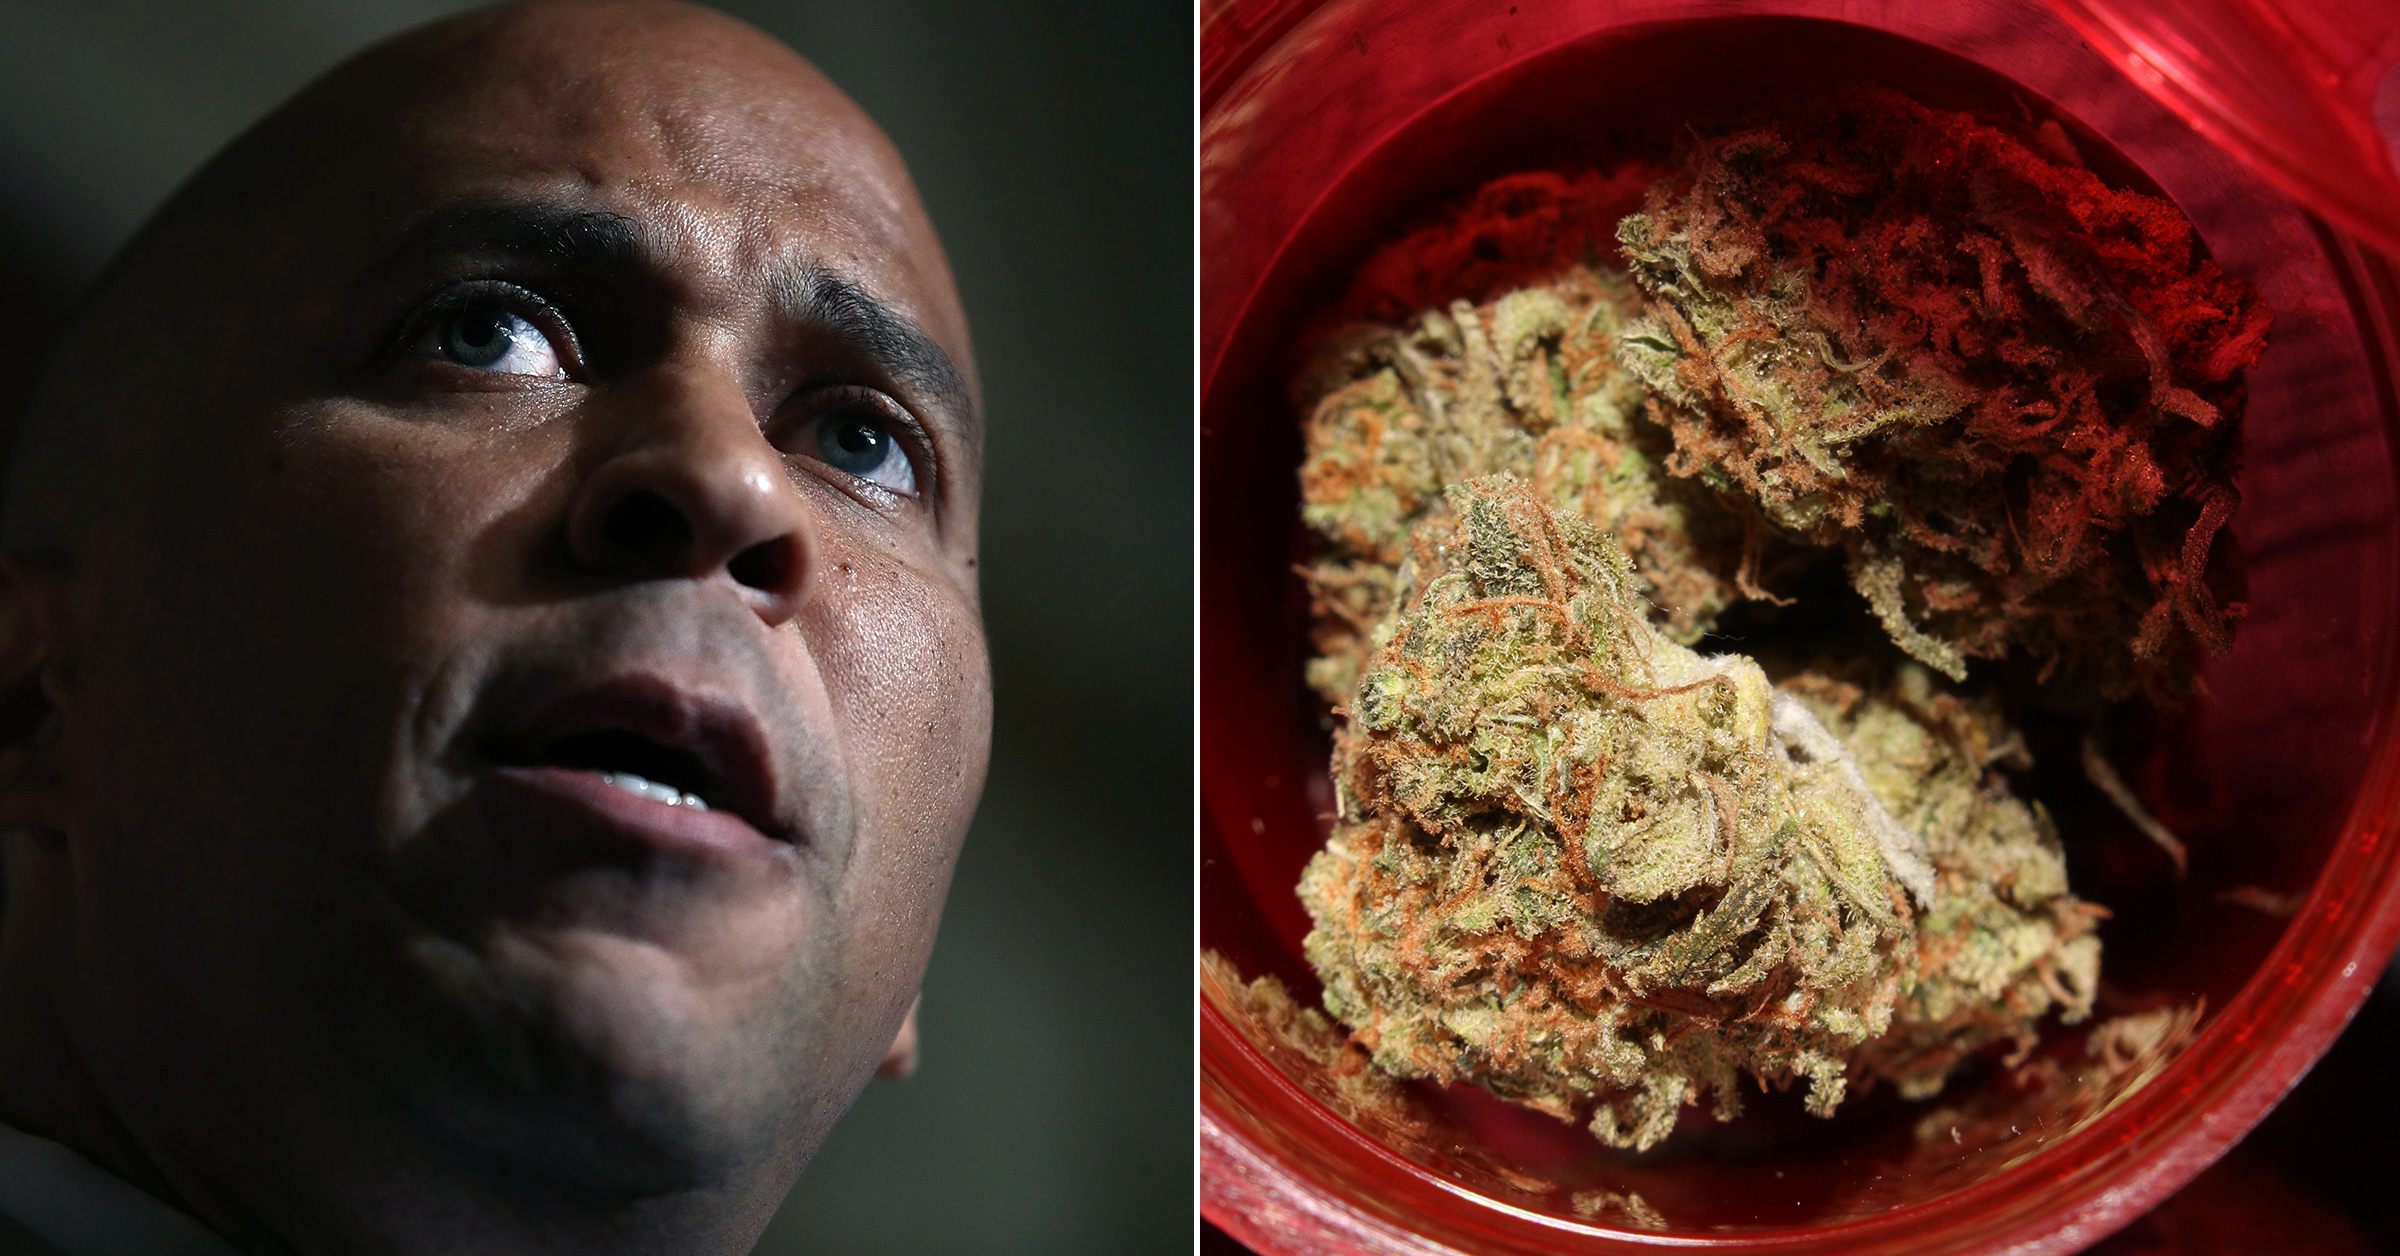 vice.com - Cory Booker Explains Why He's Making Legal Weed His Signature Issue